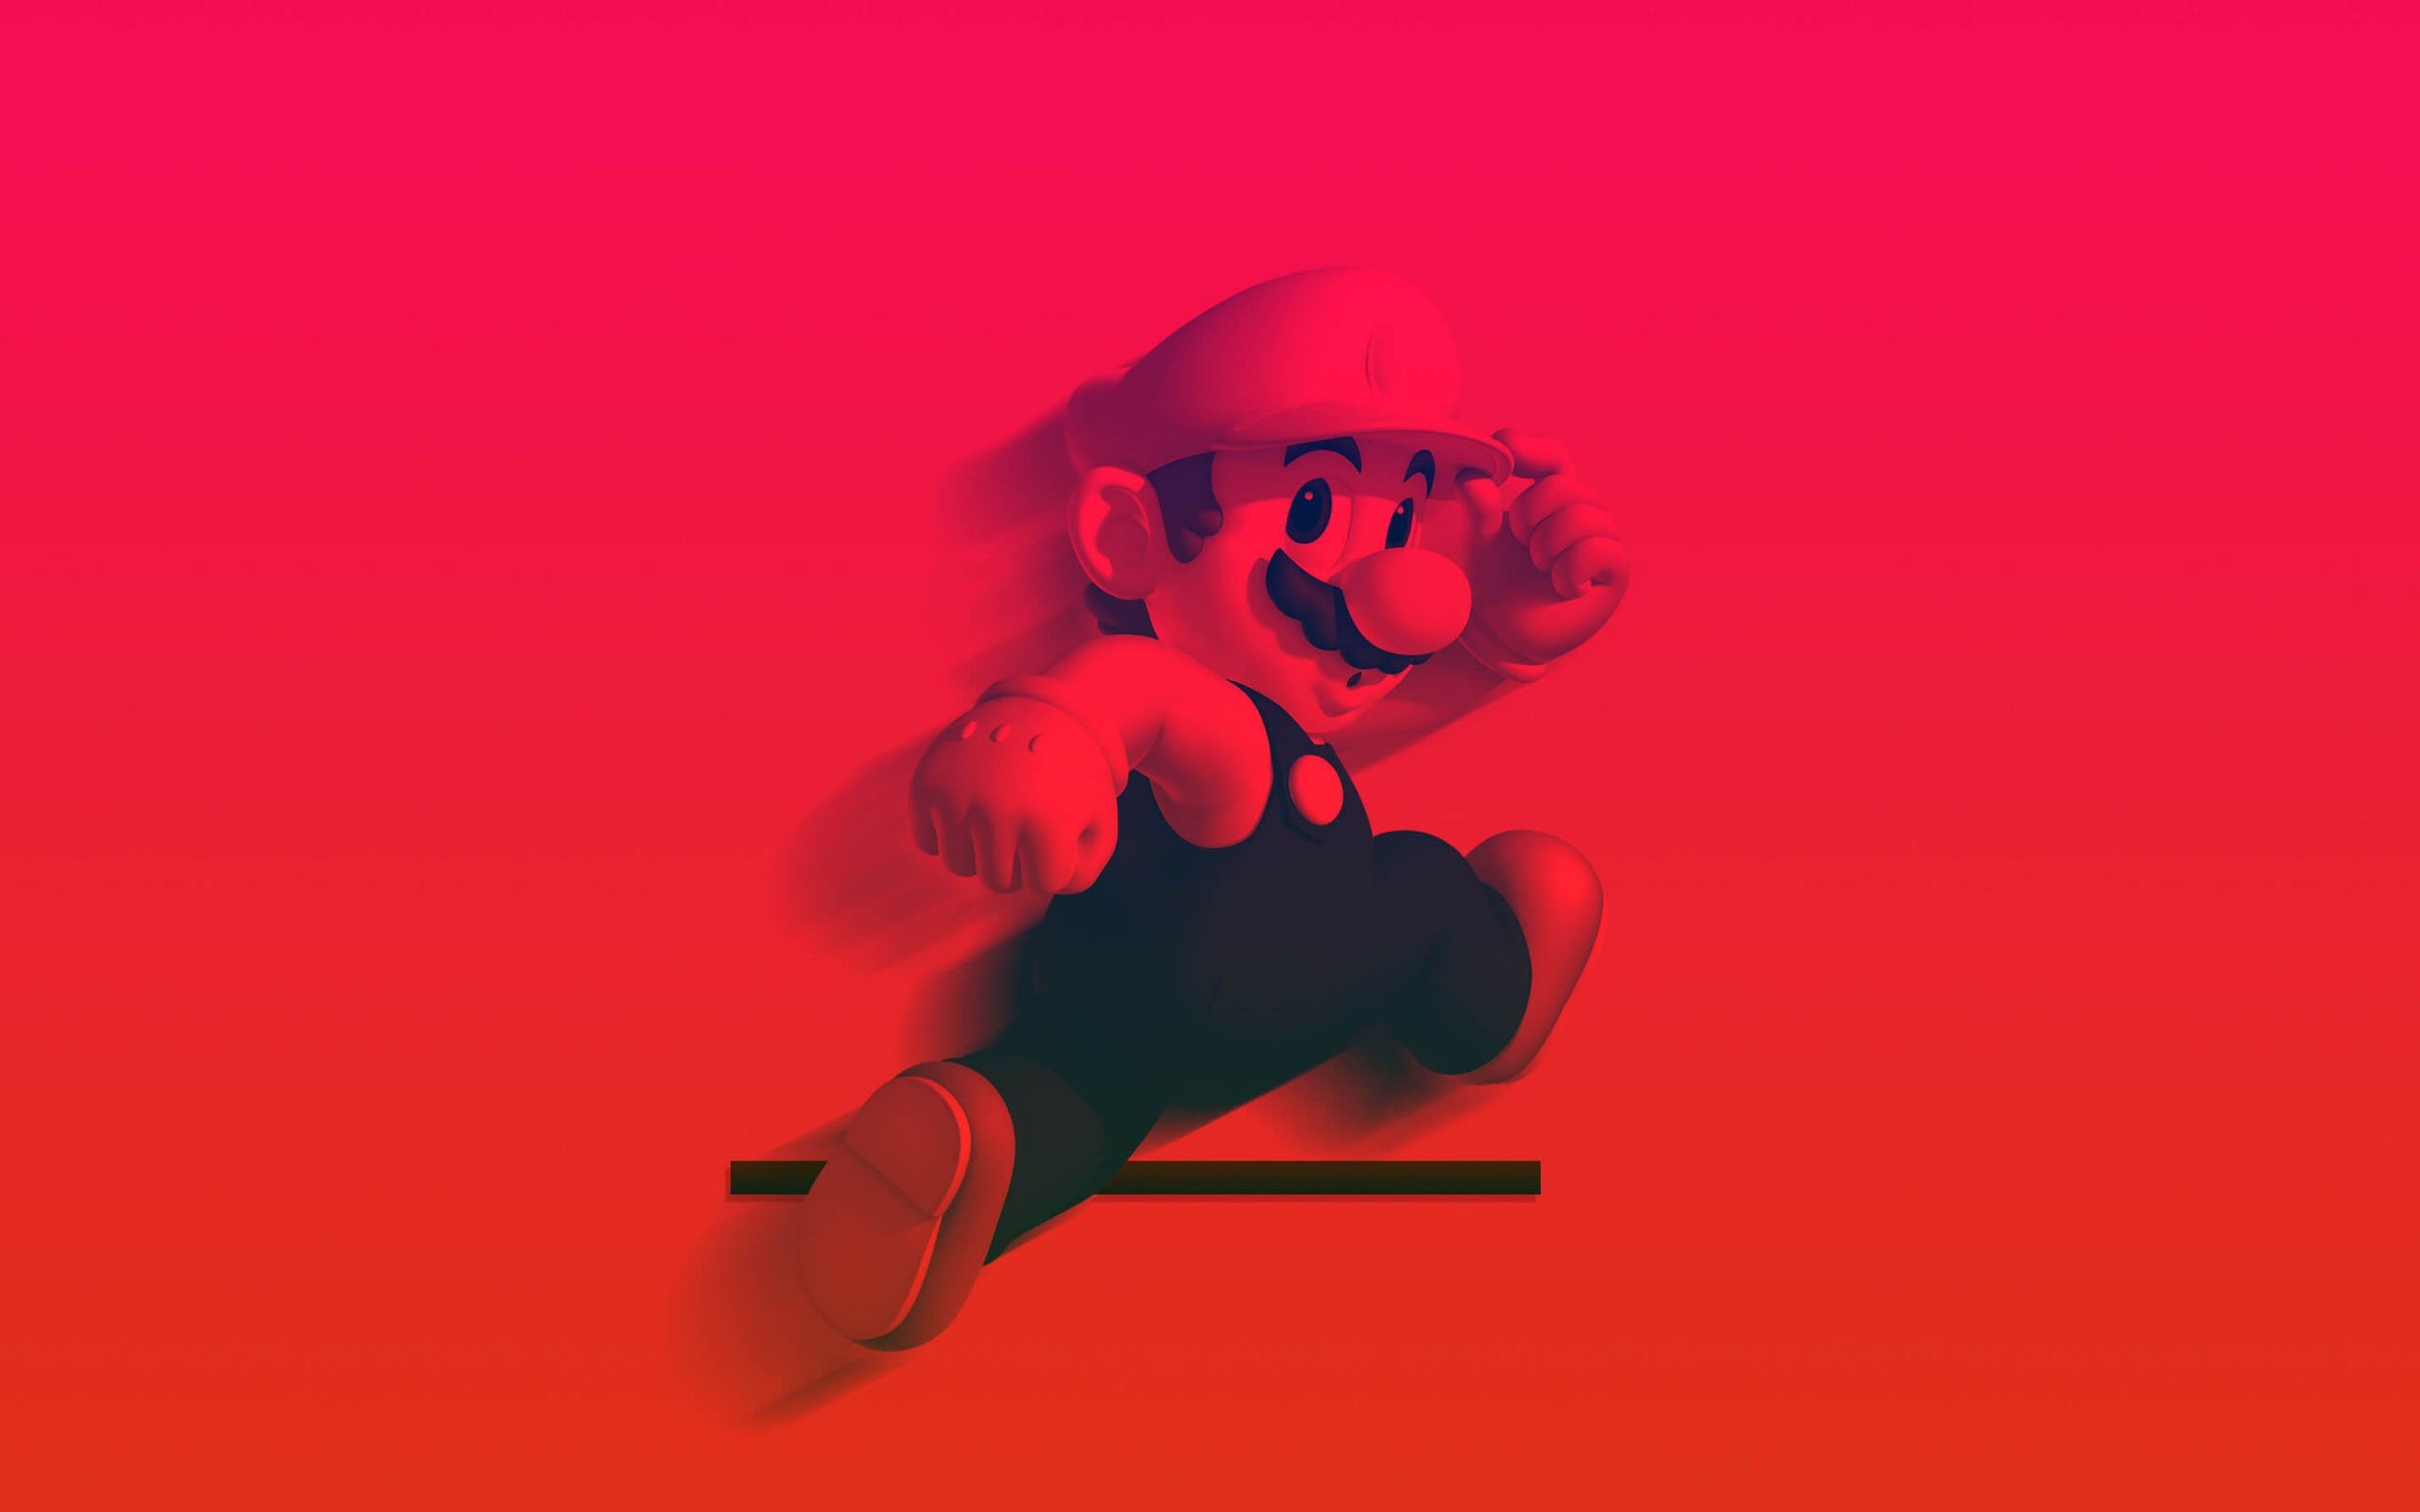 mario wallpapers, photos and desktop backgrounds up to 8k [7680x4320